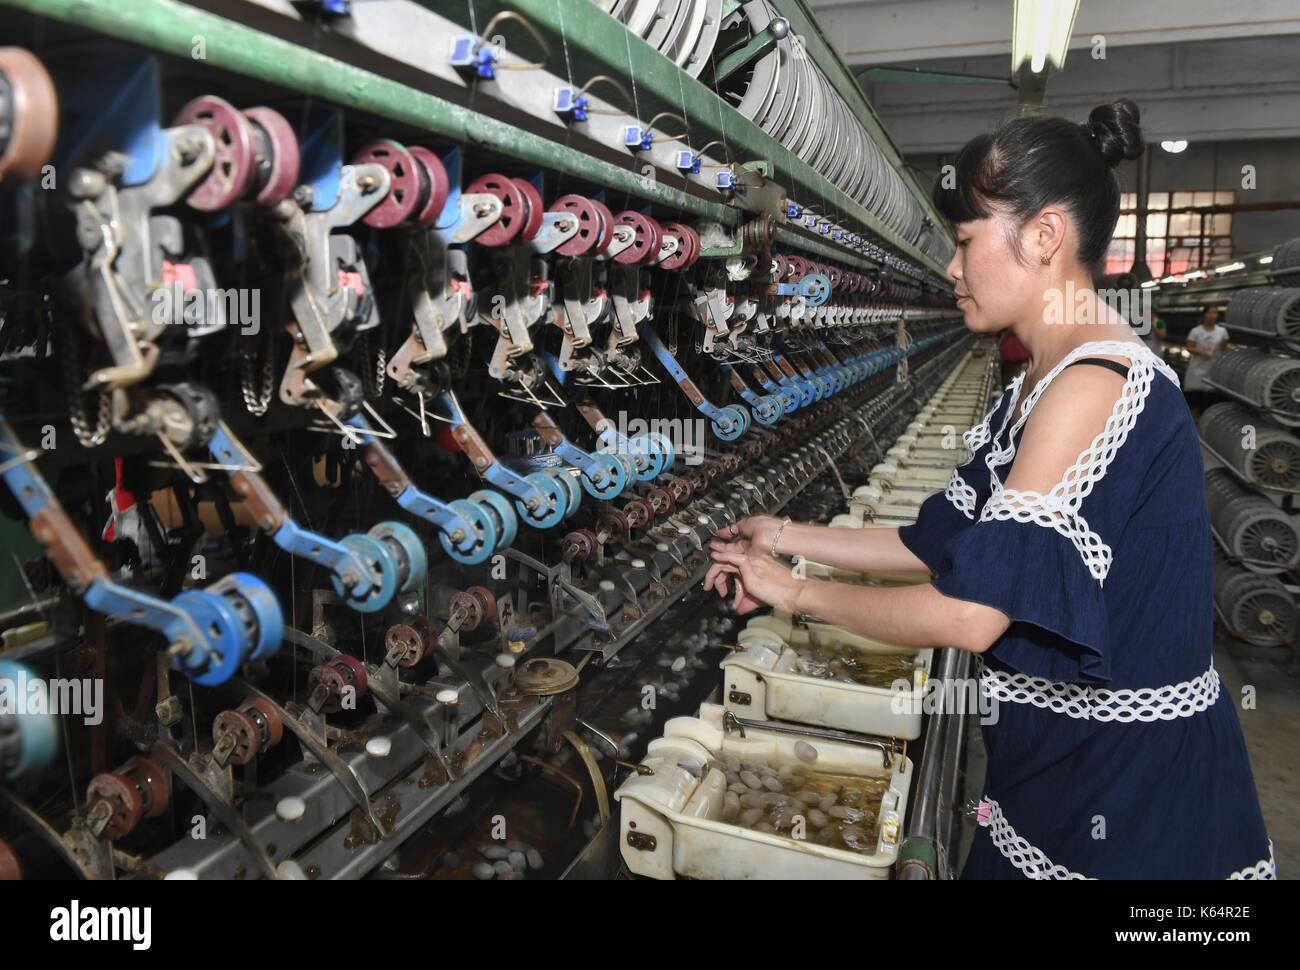 Nanchong, China's Sichuan Province. 11th Sep, 2017. A worker is seen on a textile production line at Liuhe Group in Nanchong, southwest China's Sichuan Province, Sept. 11, 2017. Nanchong enjoyed fame of a 'city of silk' which has a complete industry that covers mulberry-growing, silkworm-raising, silk production, silk fabric processing and education and research on sericulture and silk production. Credit: Liu Kun/Xinhua/Alamy Live News - Stock Image